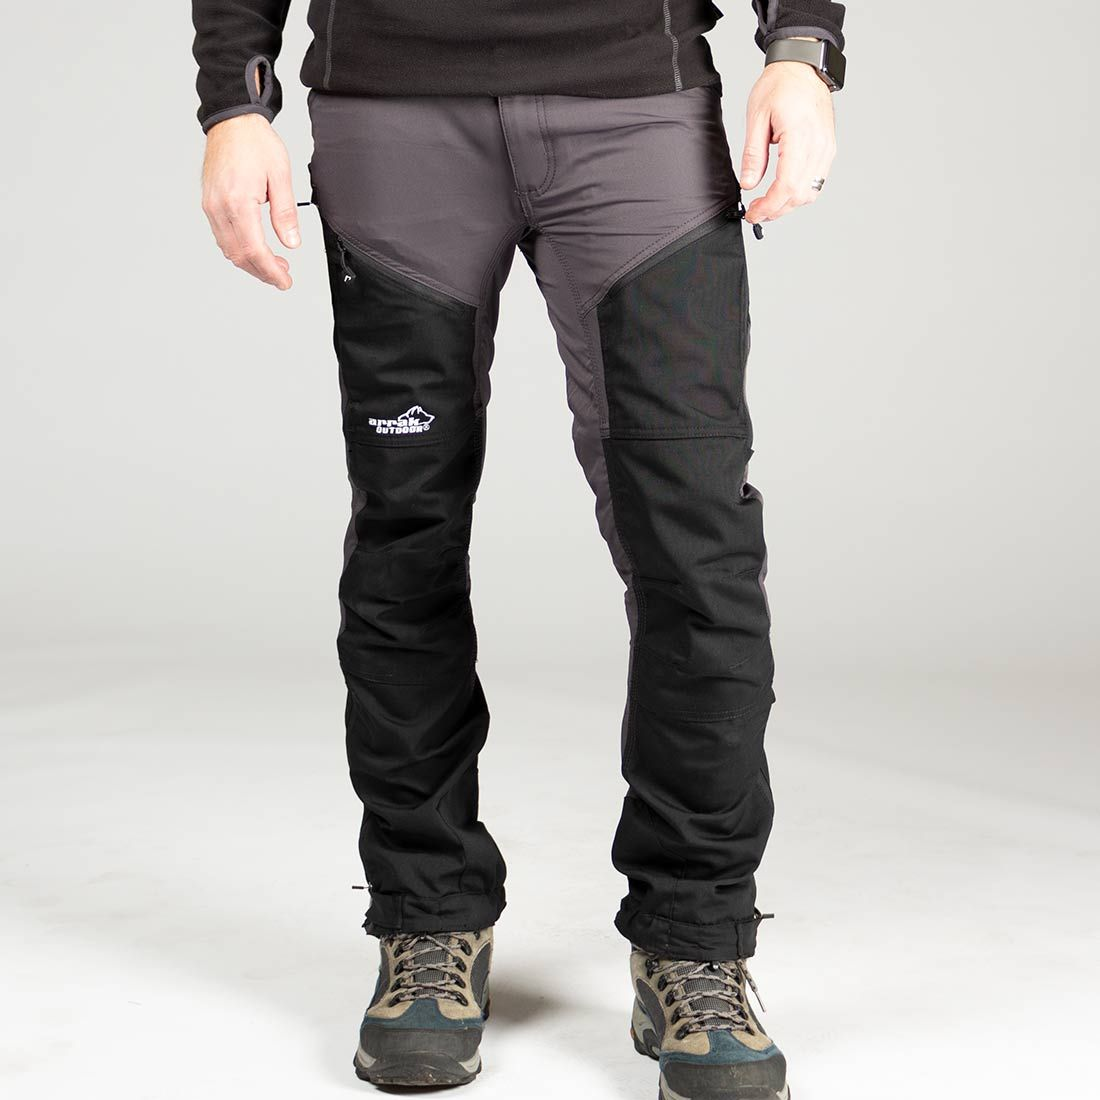 6b510d0d5b2 NYHED: Rough Pants Dark Grå/sort Men - Arrak Outdoor - Hirtshals  Hundepension v/Jan Sørensen